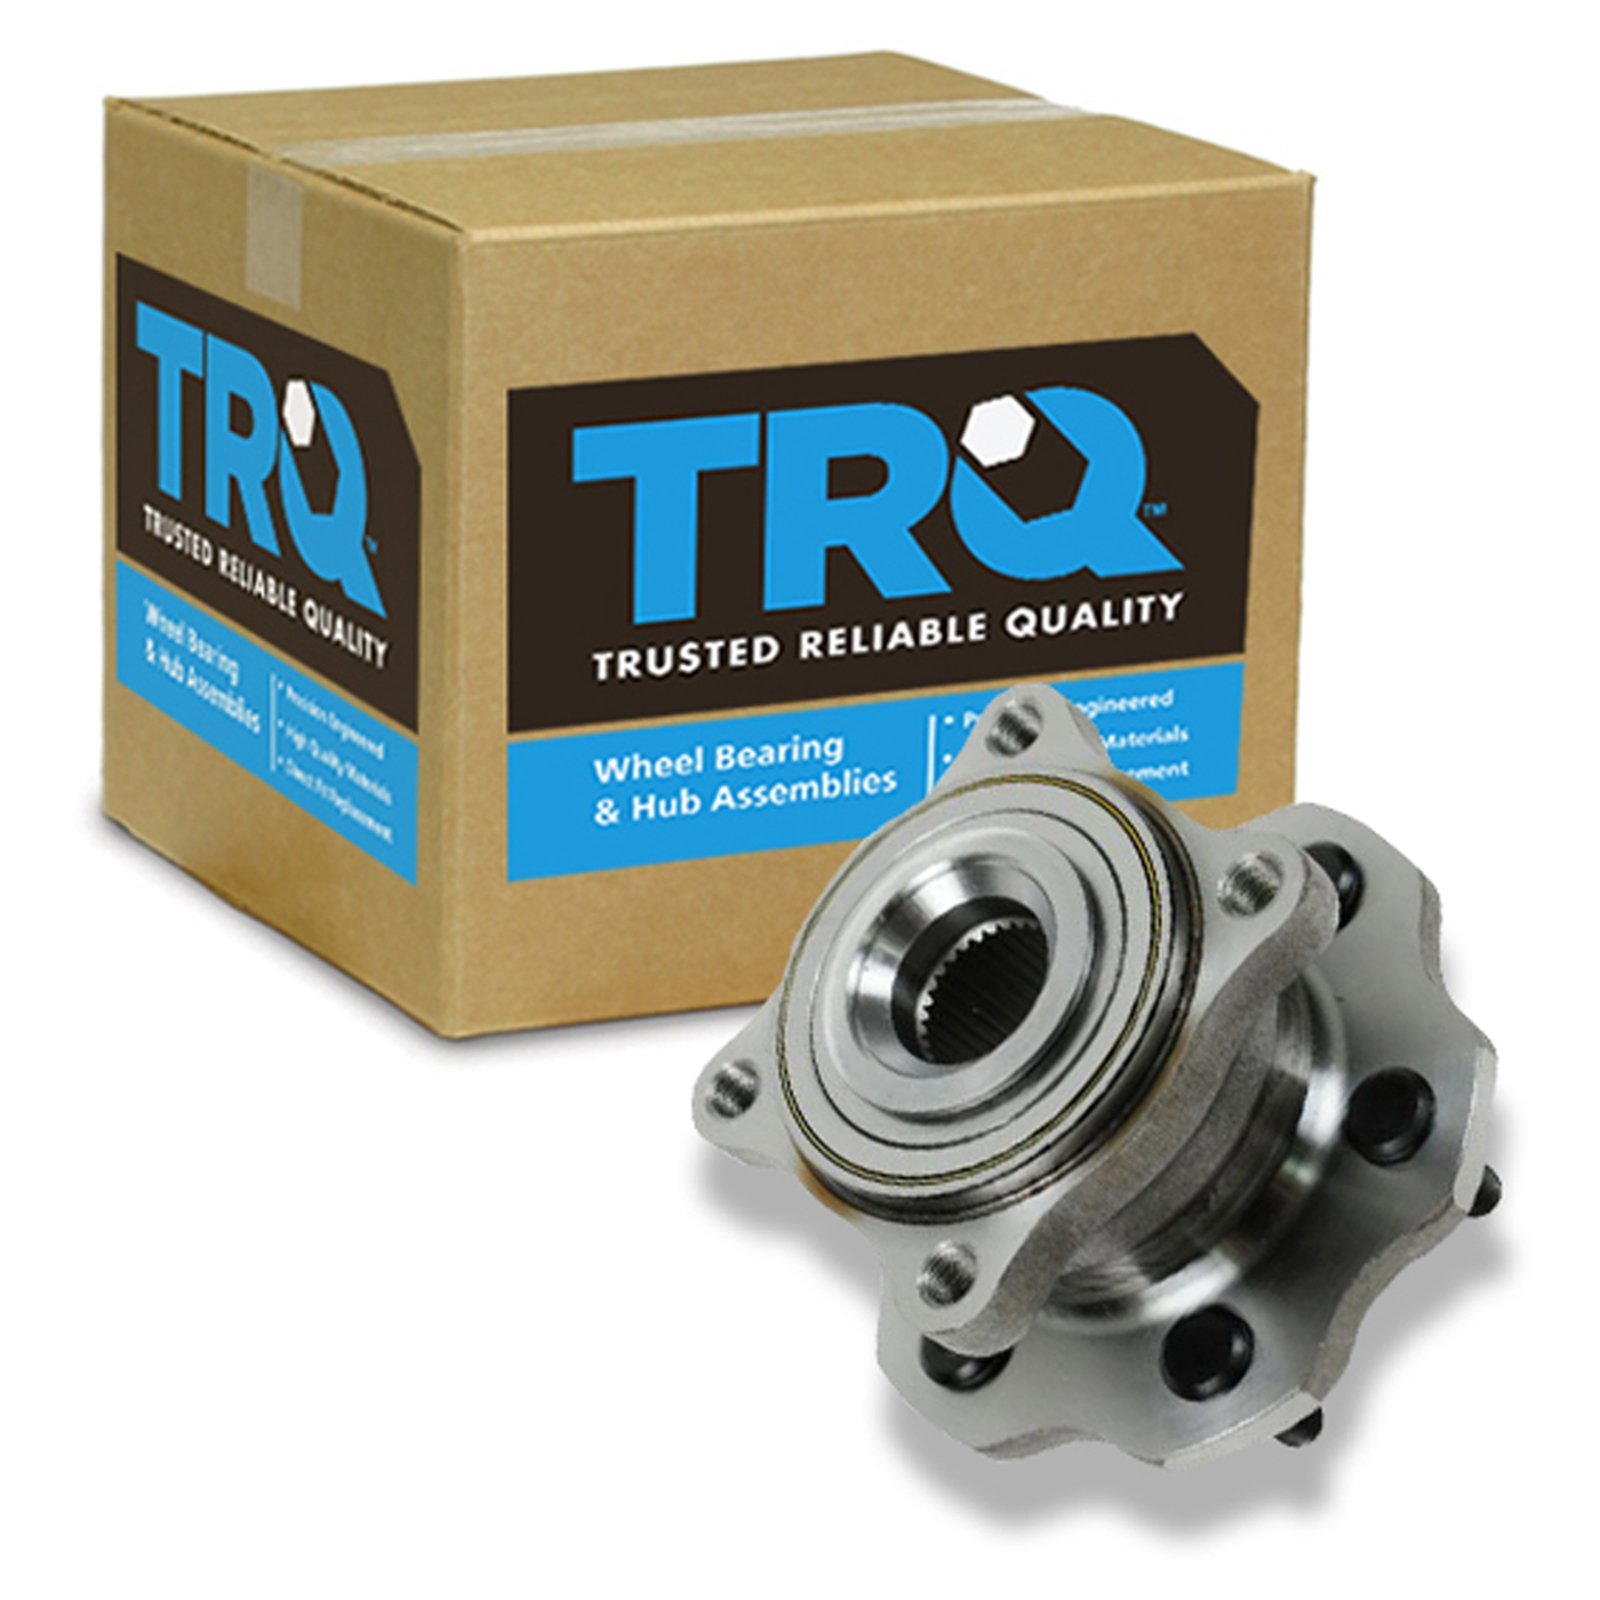 TRQ Wheel Bearing & Hub Assembly Rear for 05-12 Nissan Pathfinder